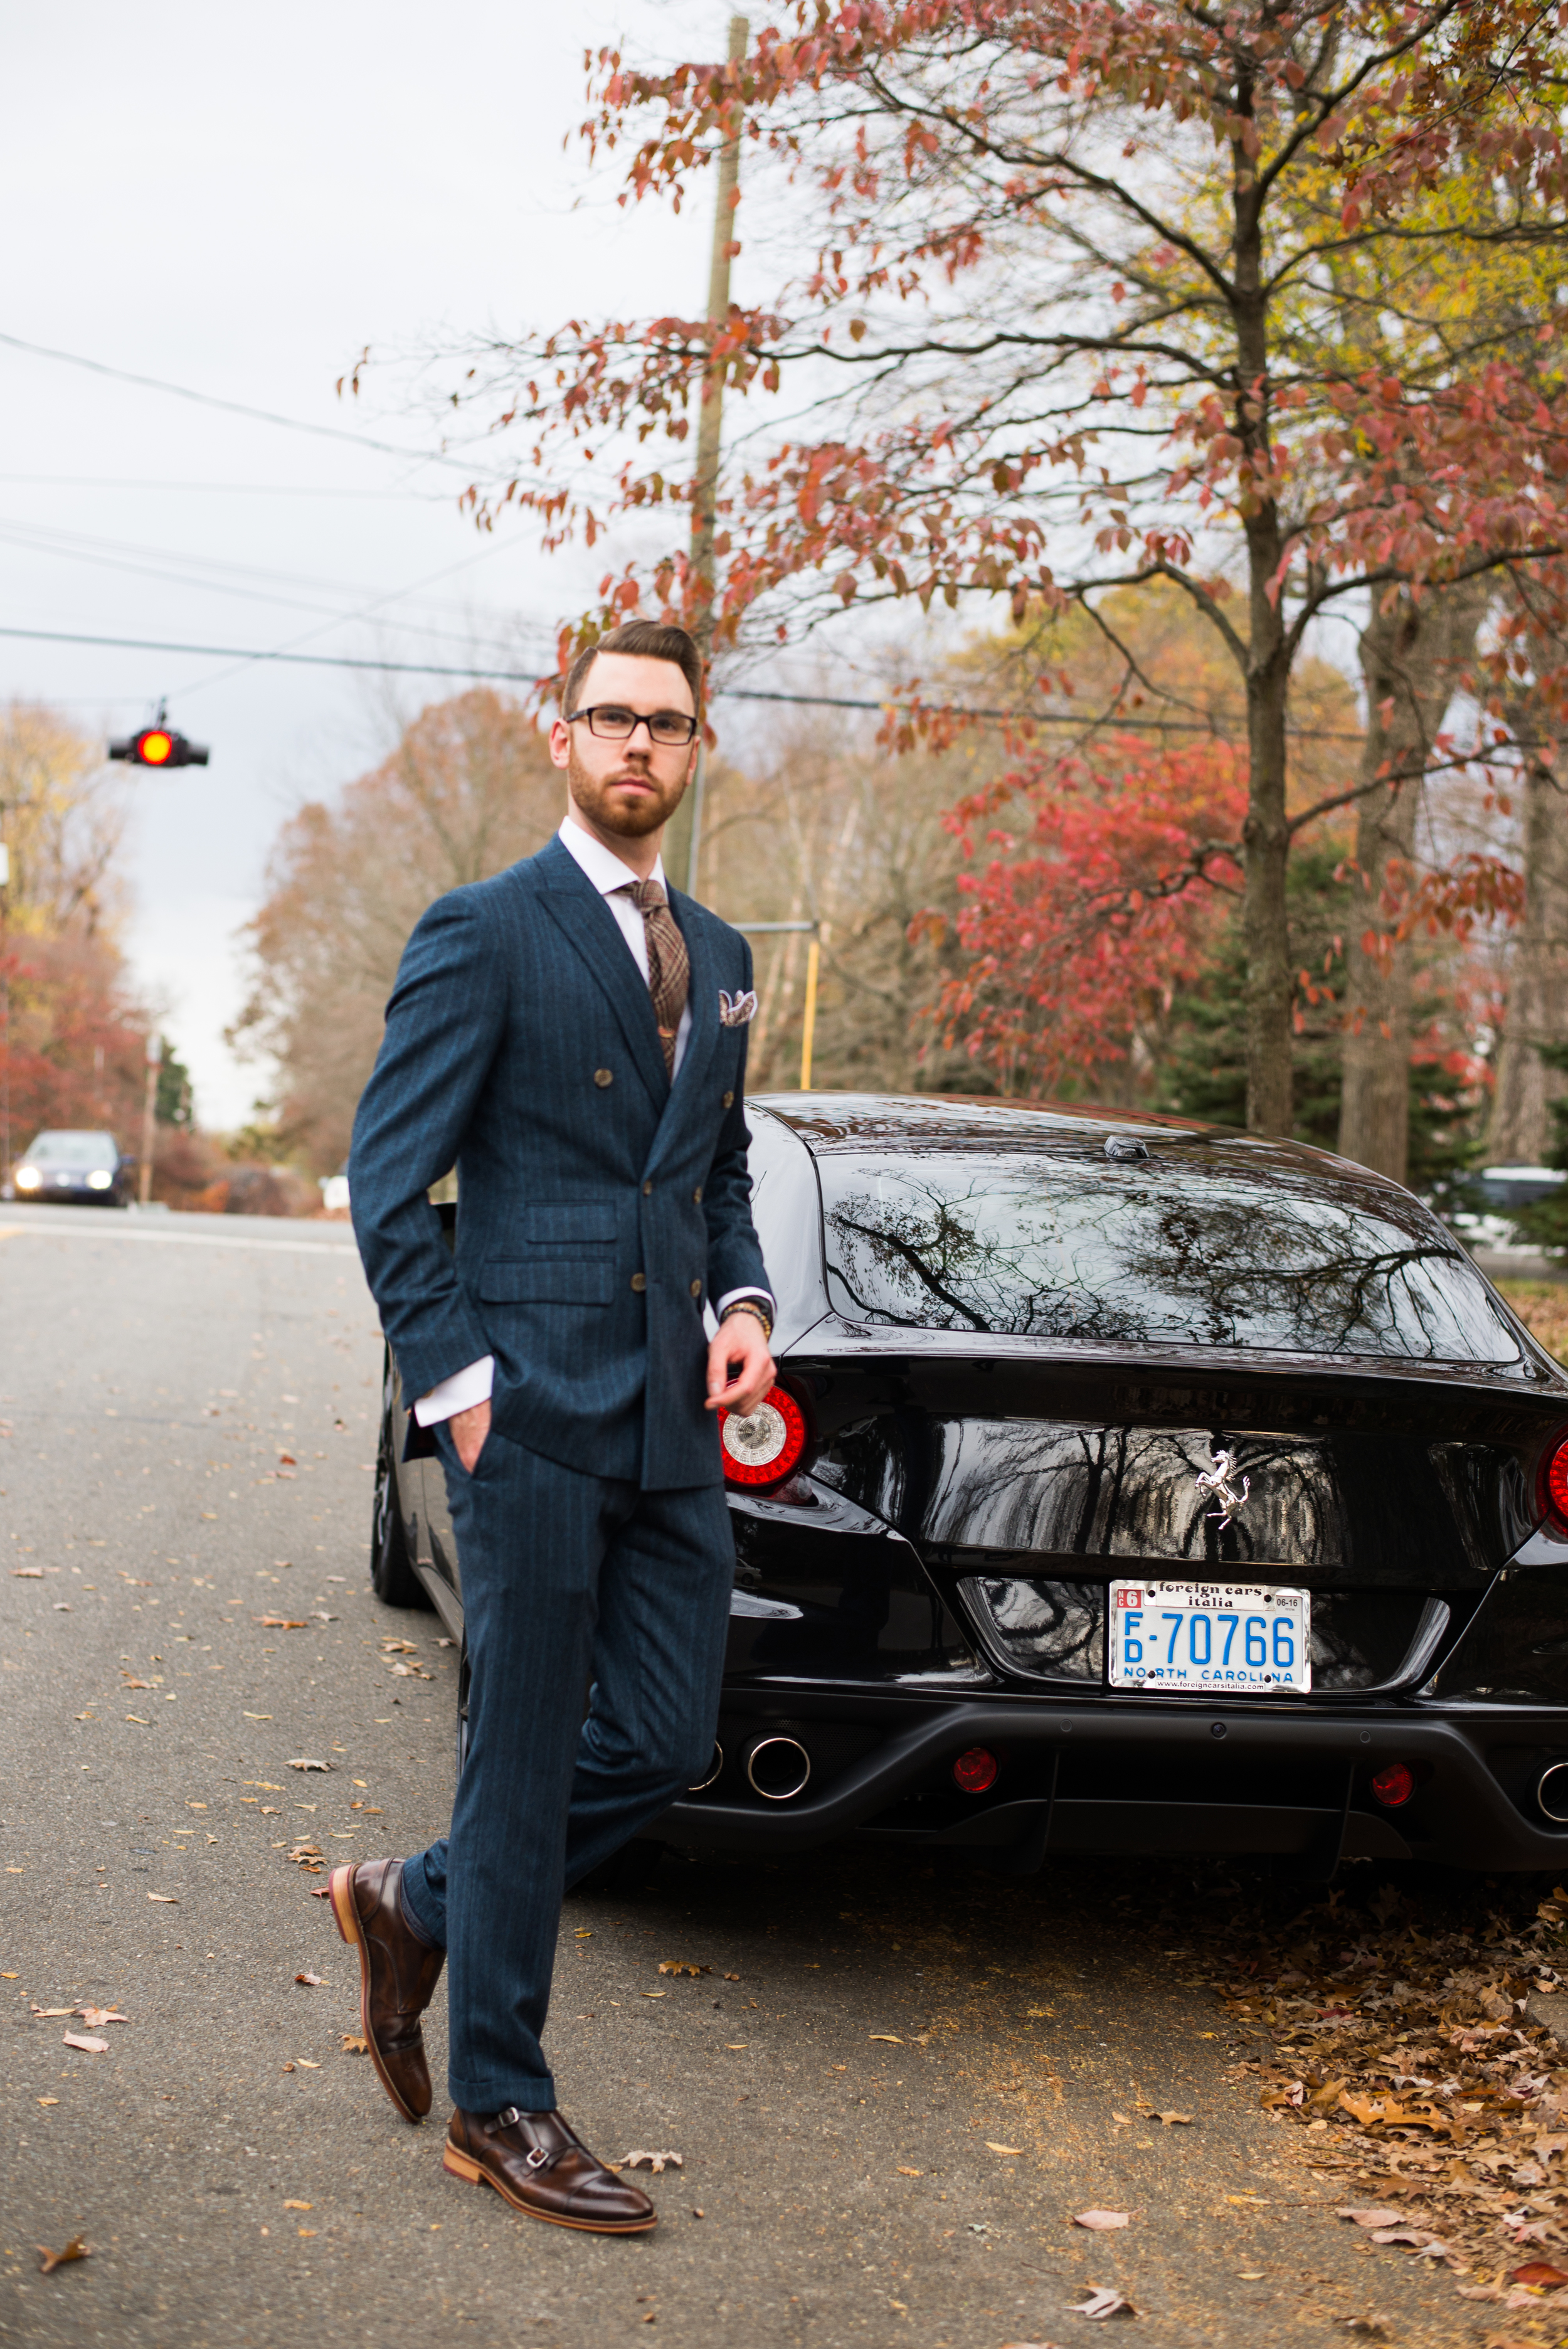 Suit: Indochino, Shoes: Johnston & Murphy, Glasses: Burberry, Watch: Snyper, Shirt: Ledbury, Tie/Pocket Square: Sprezza Box, Car: Ferrari FF, Photo by Alec Hutchins Photography, Hair styled by: Carlos Carvana; Owner The Oval Office.